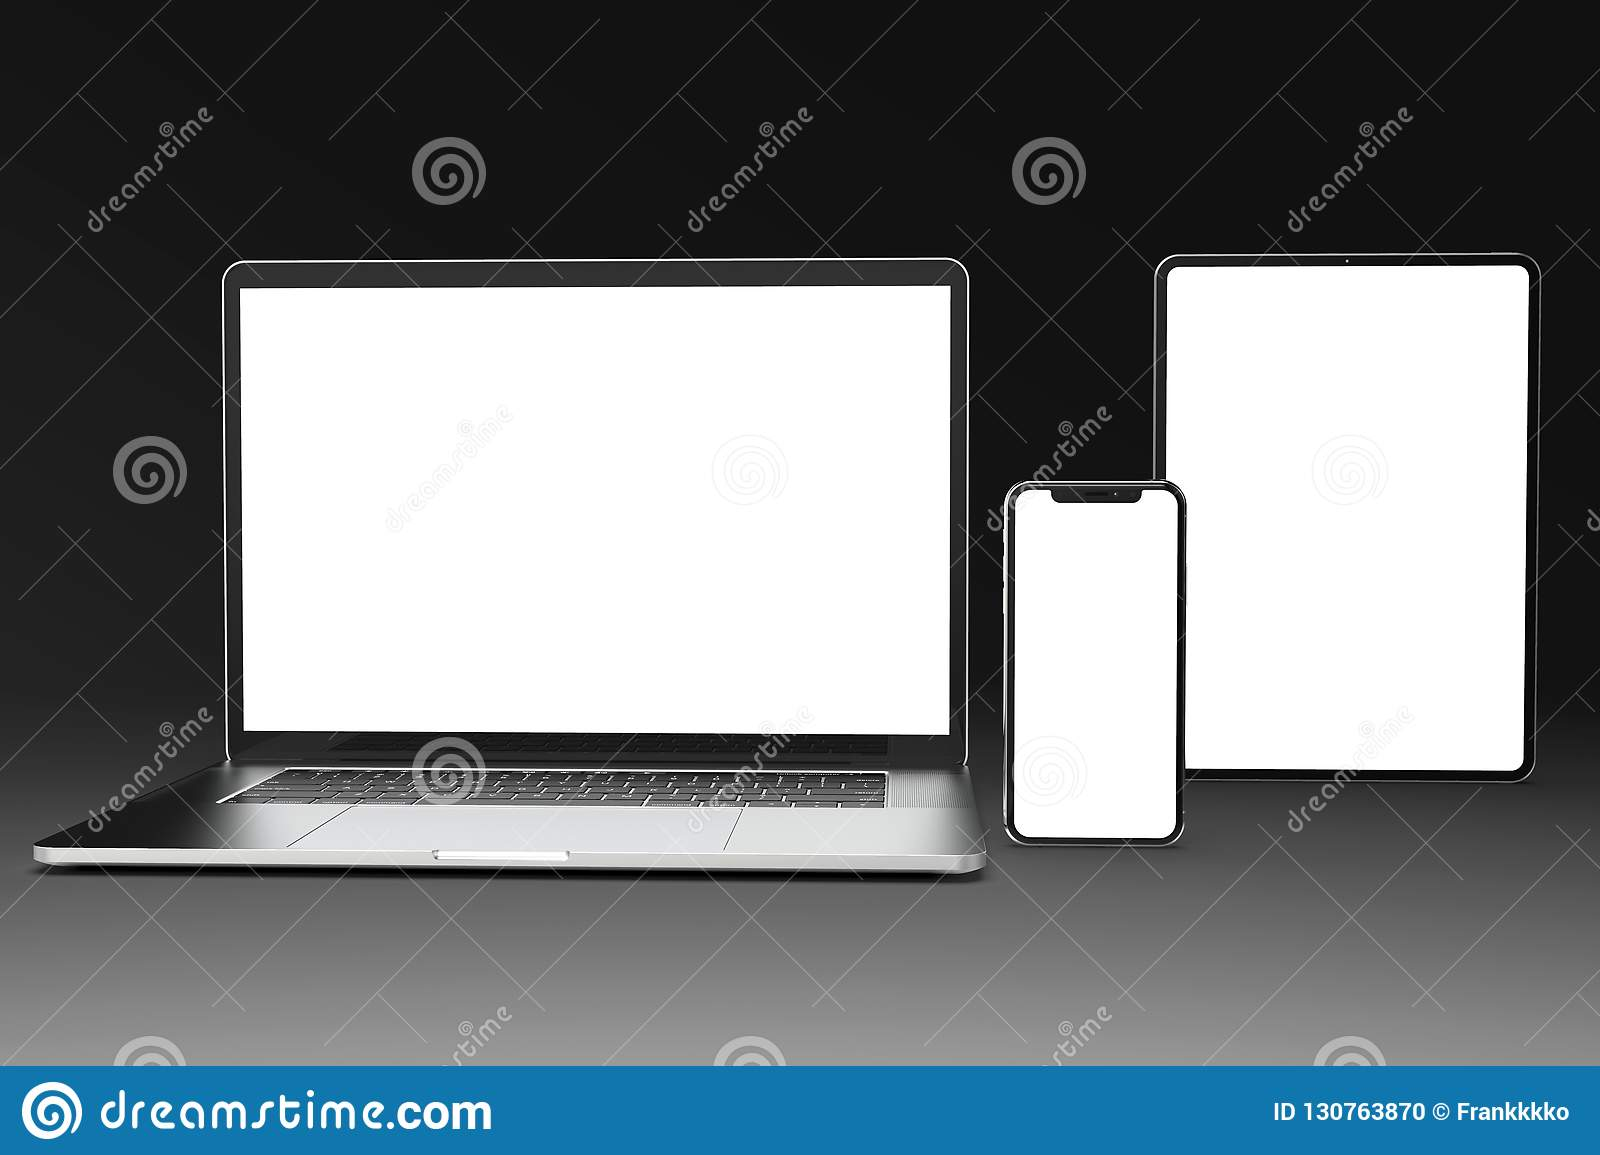 Devices for Responsive site mock-up: laptop, phone, tablet